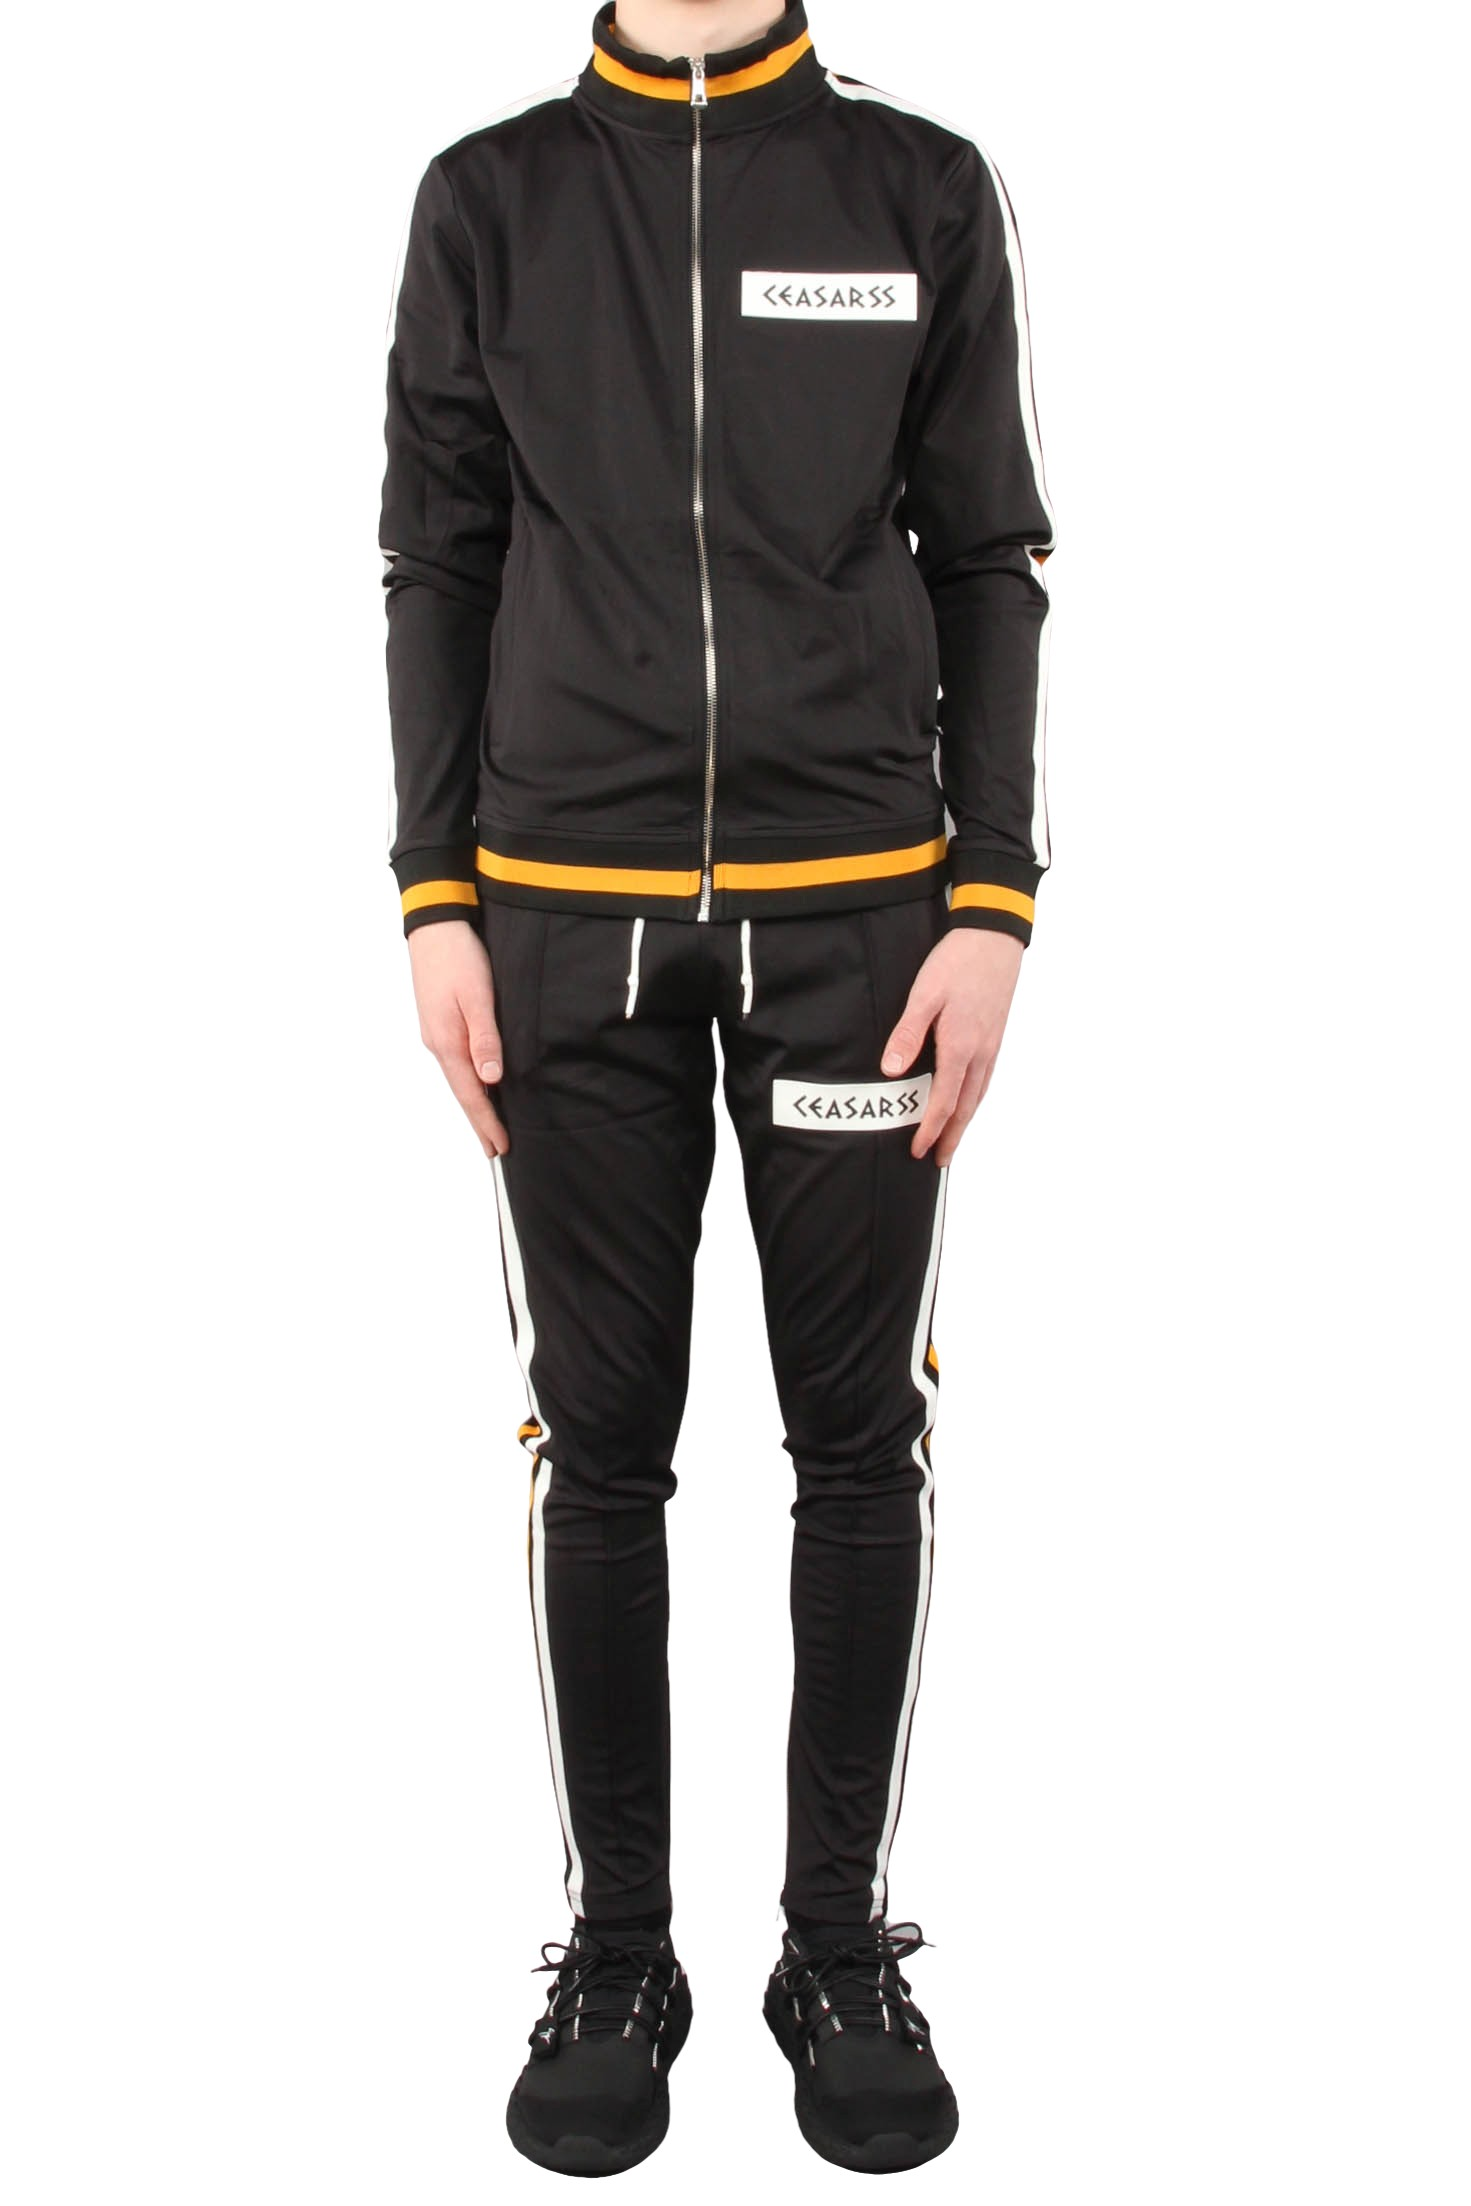 Ceasarss Tracksuit